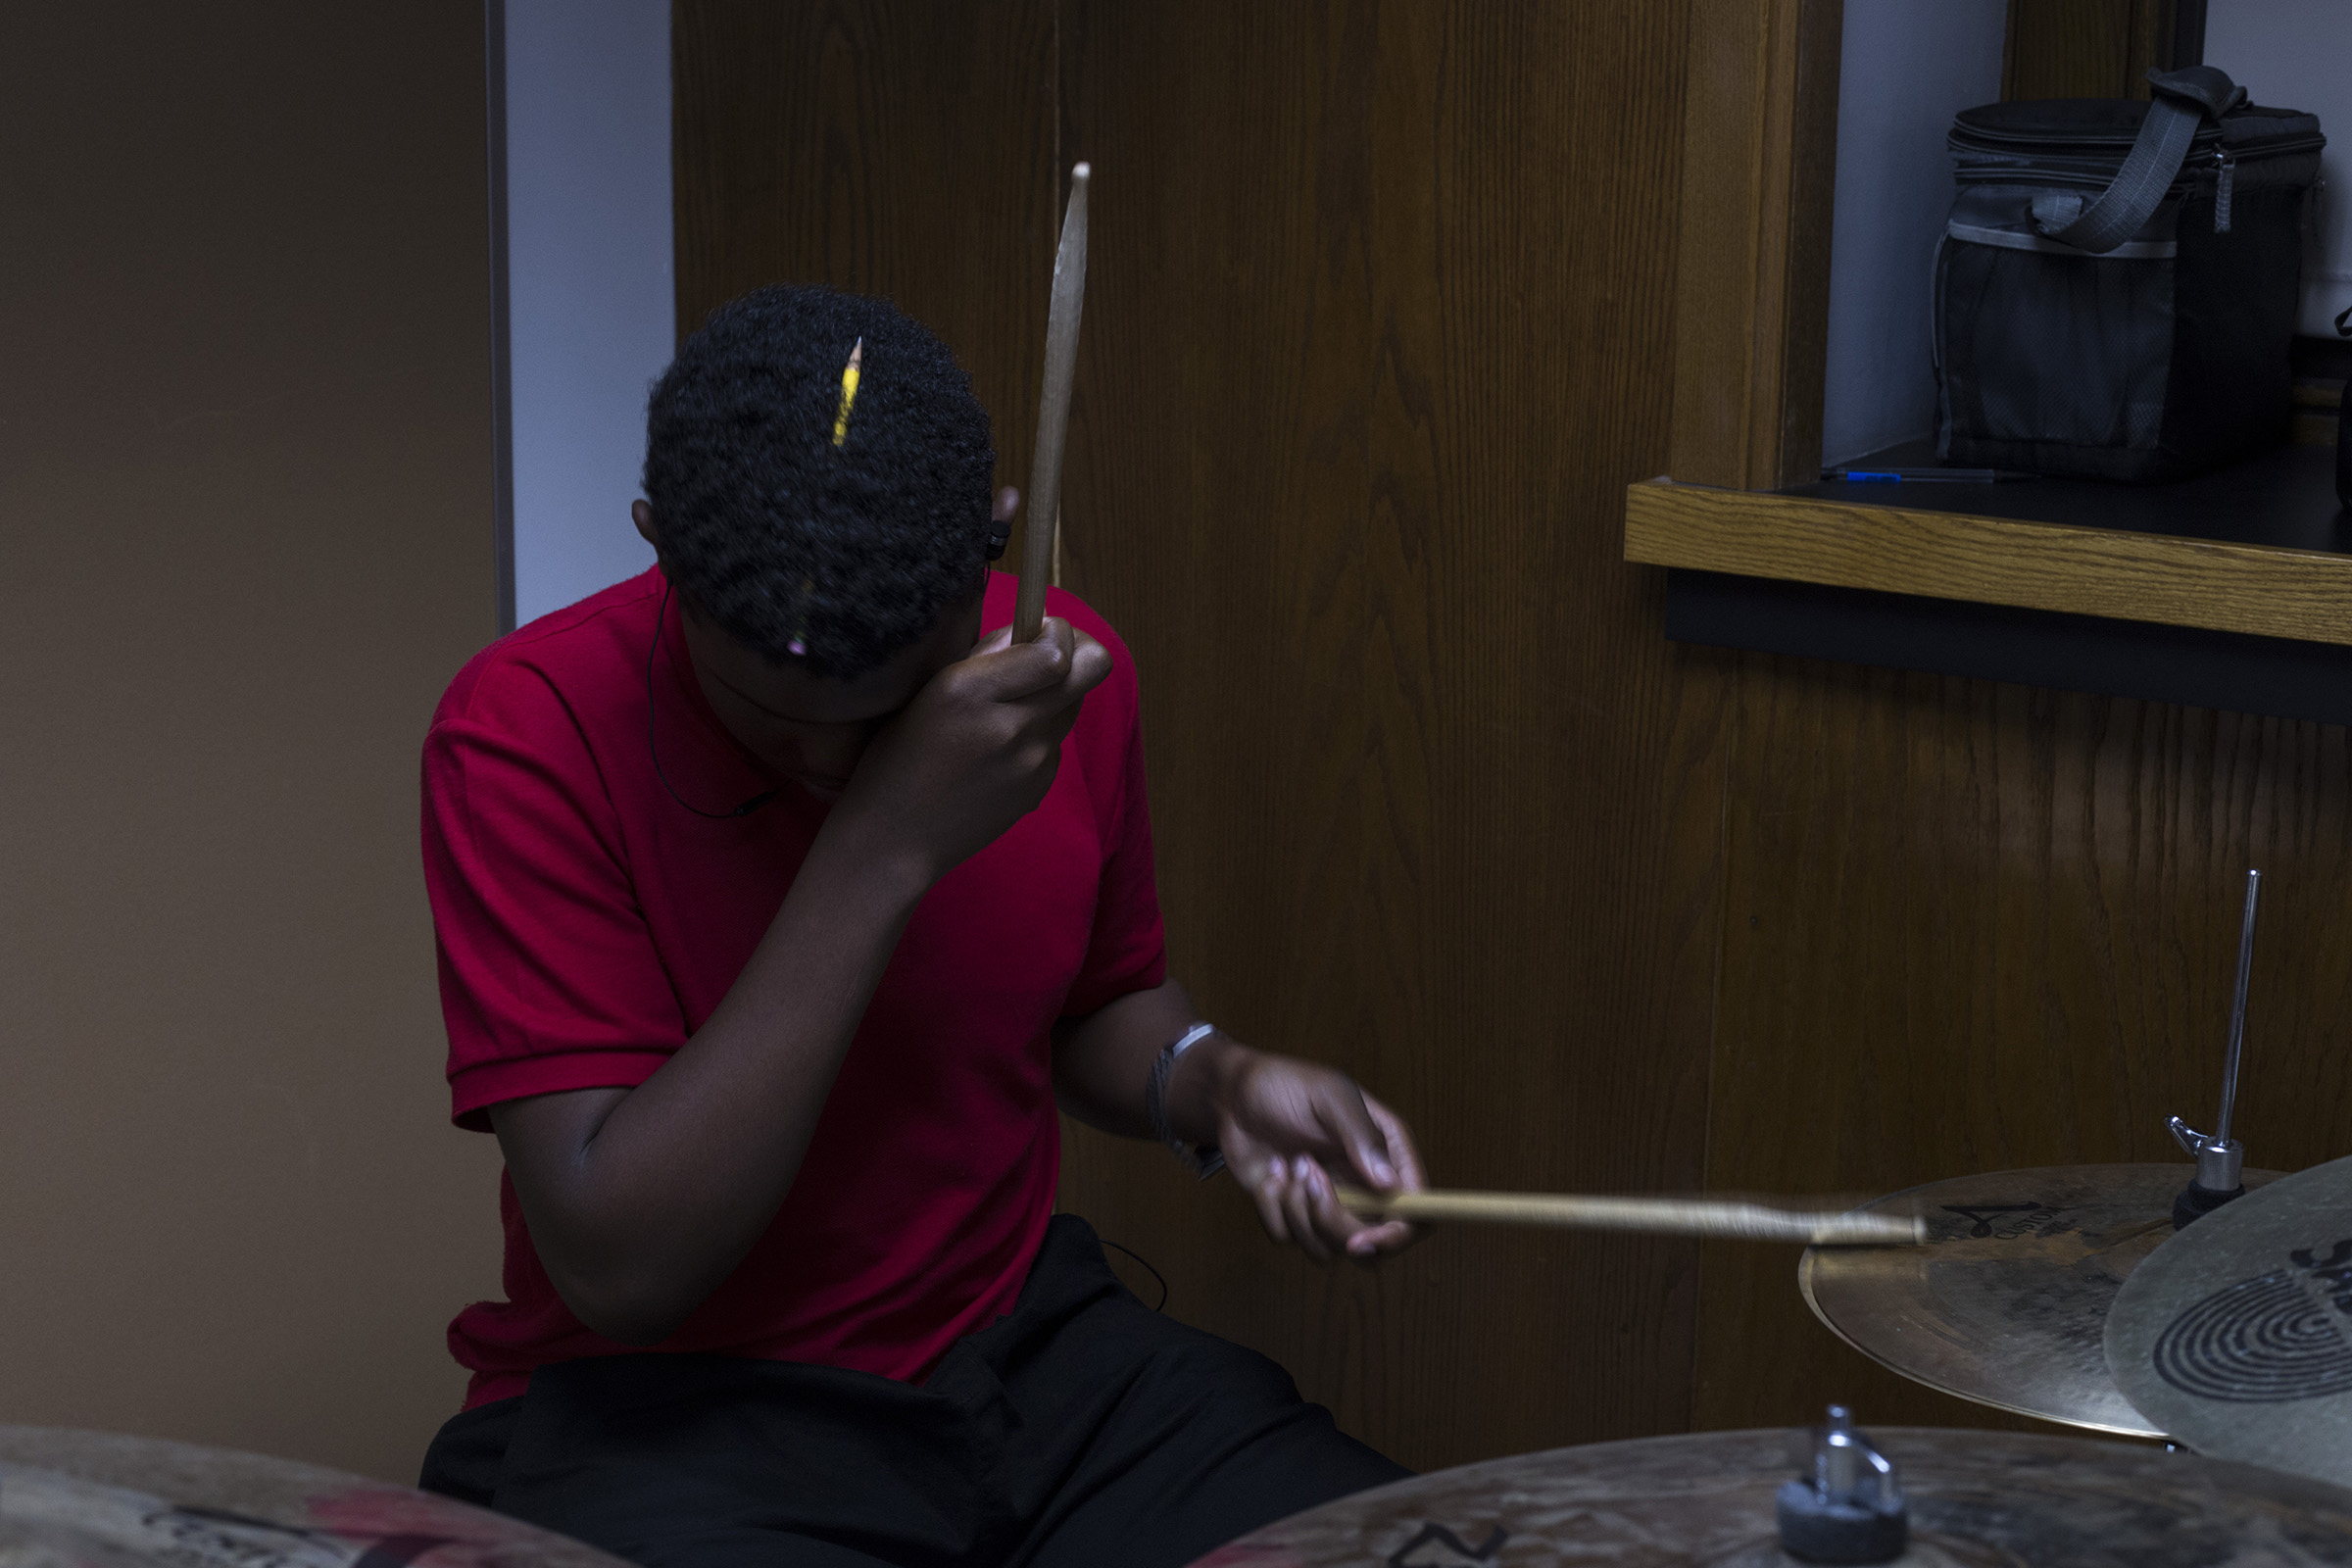 Holding a pencil in his hair, a student plays the drums in sequence with his classmates during jazz band at the High School of Commerce in Springfield, Mass., on Monday, September, 11, 2017. (Photo by Brittany Greeson)